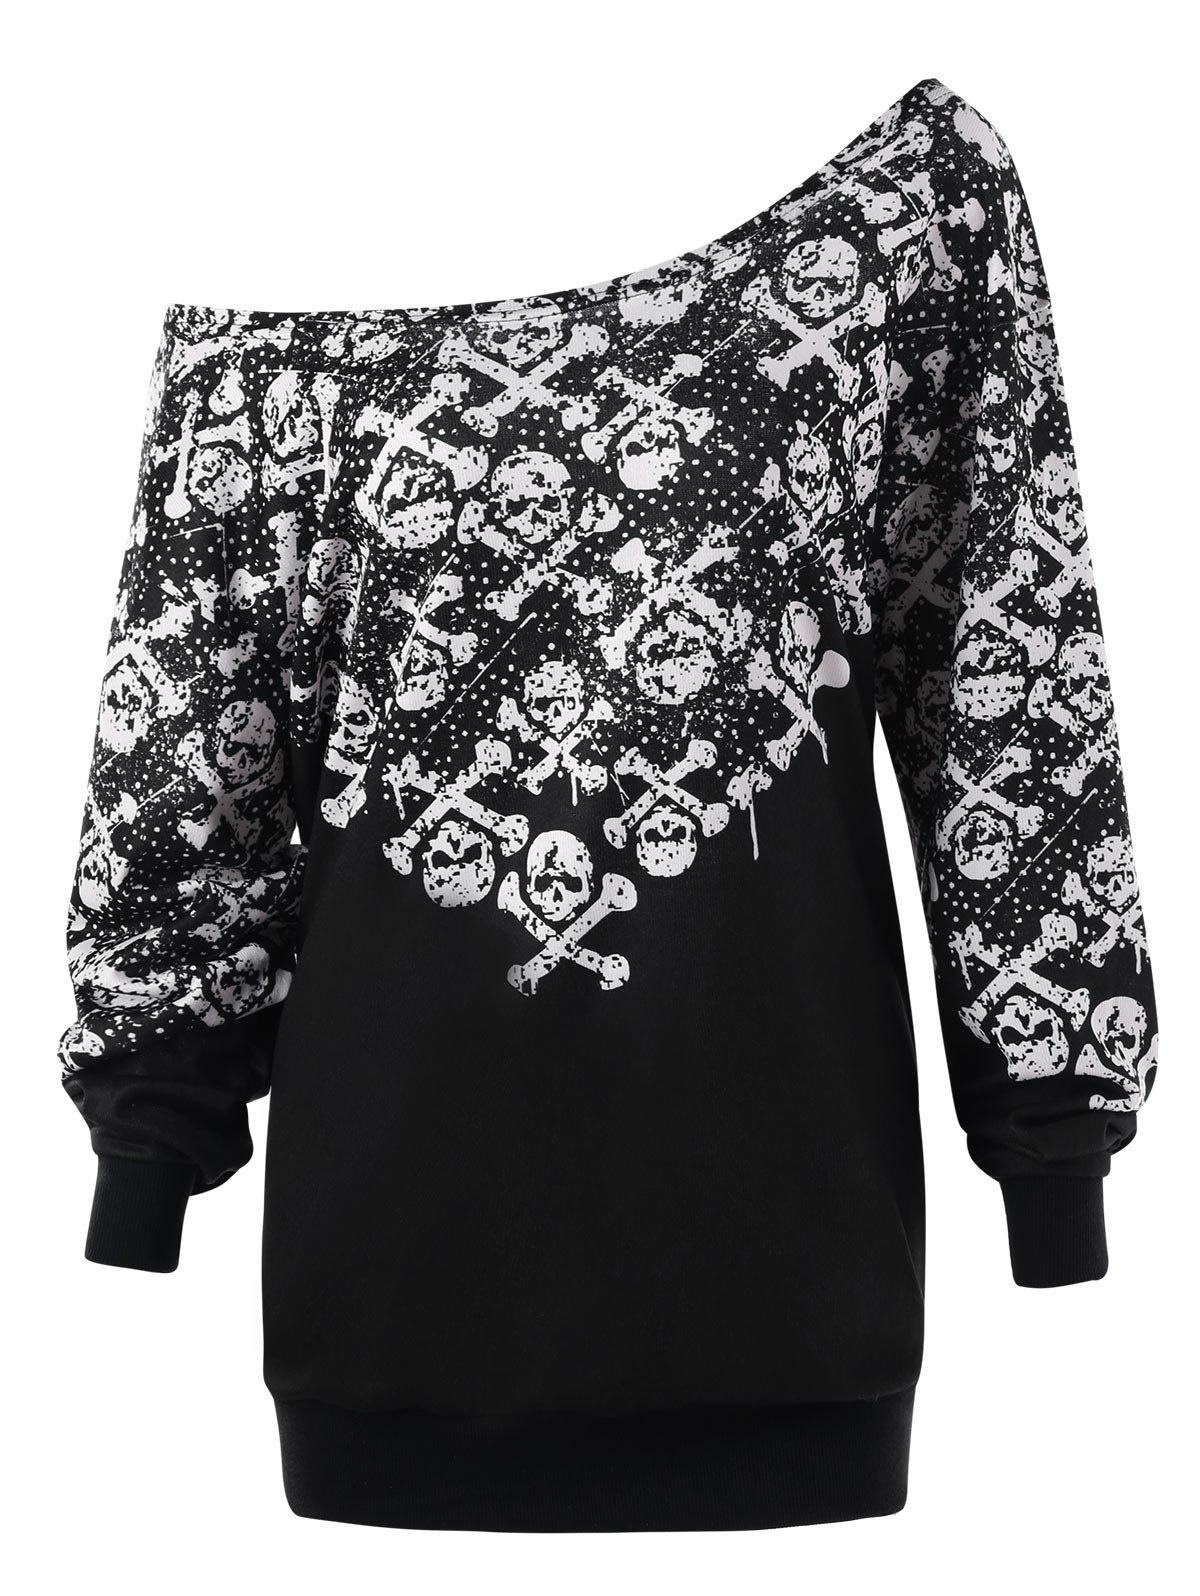 Plus Size Monochrome Skulls Skew Collar Sweatshirt plus size christmas reindeer skew collar sweatshirt